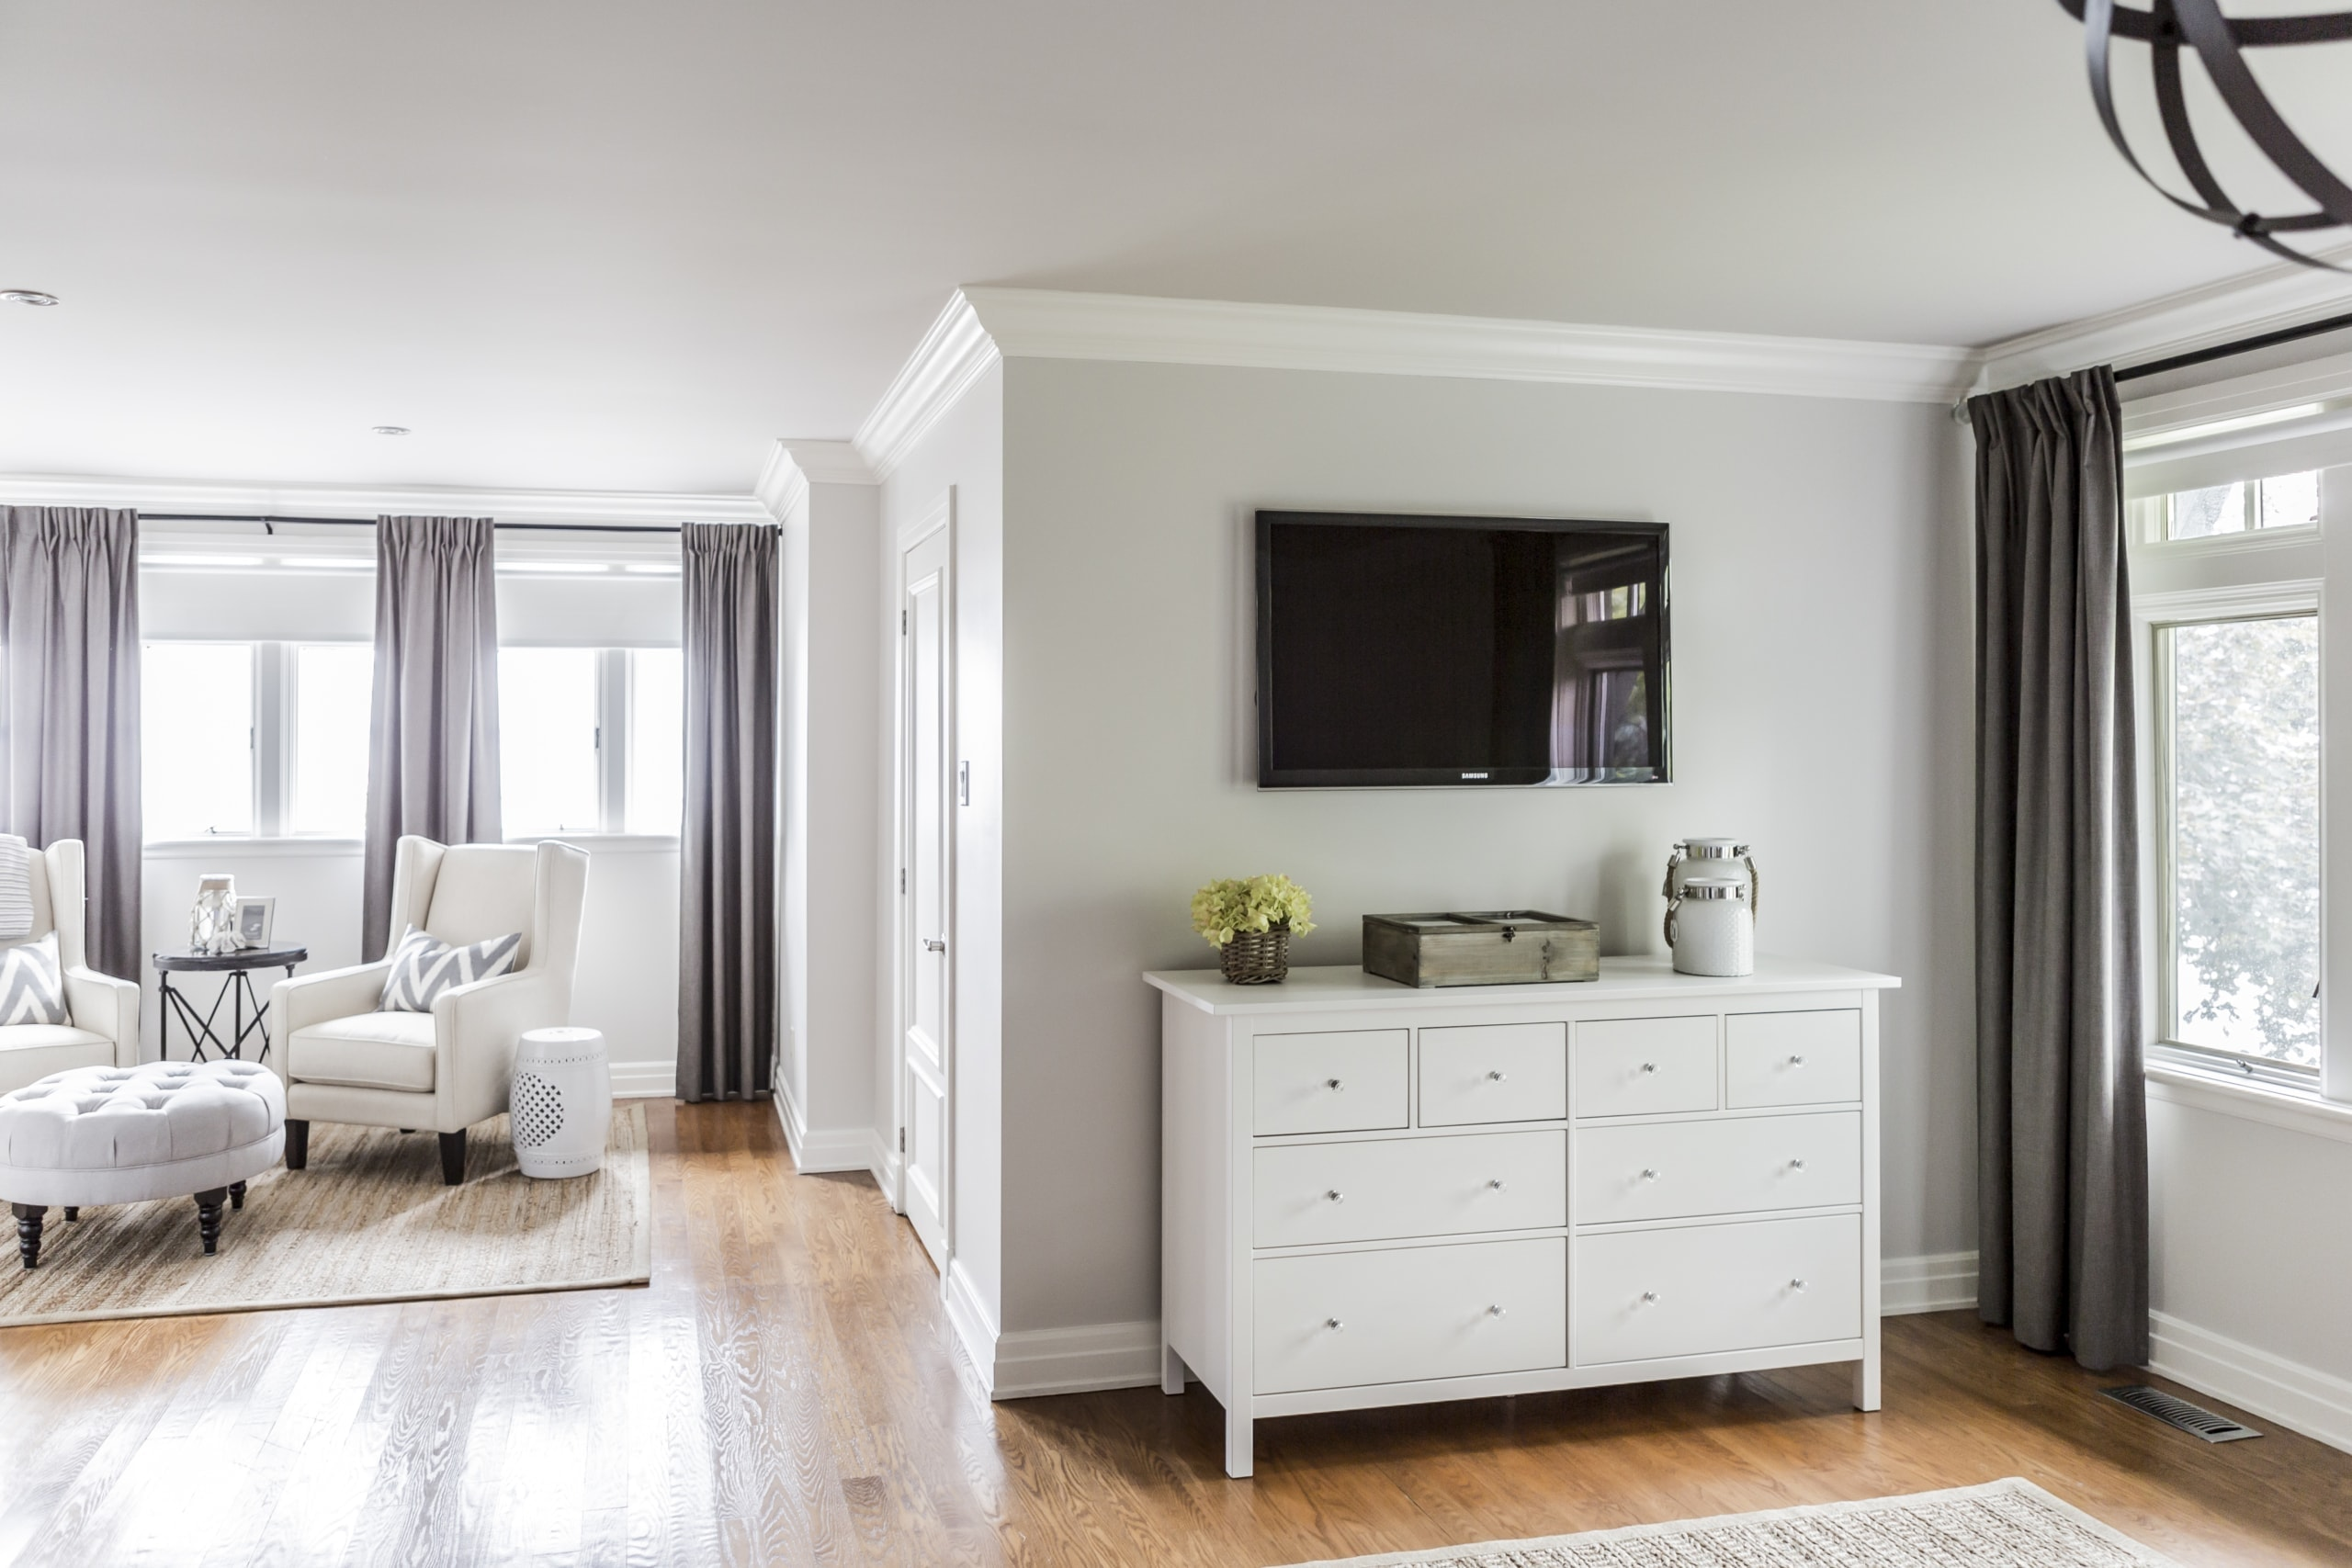 White dresser with a television above it